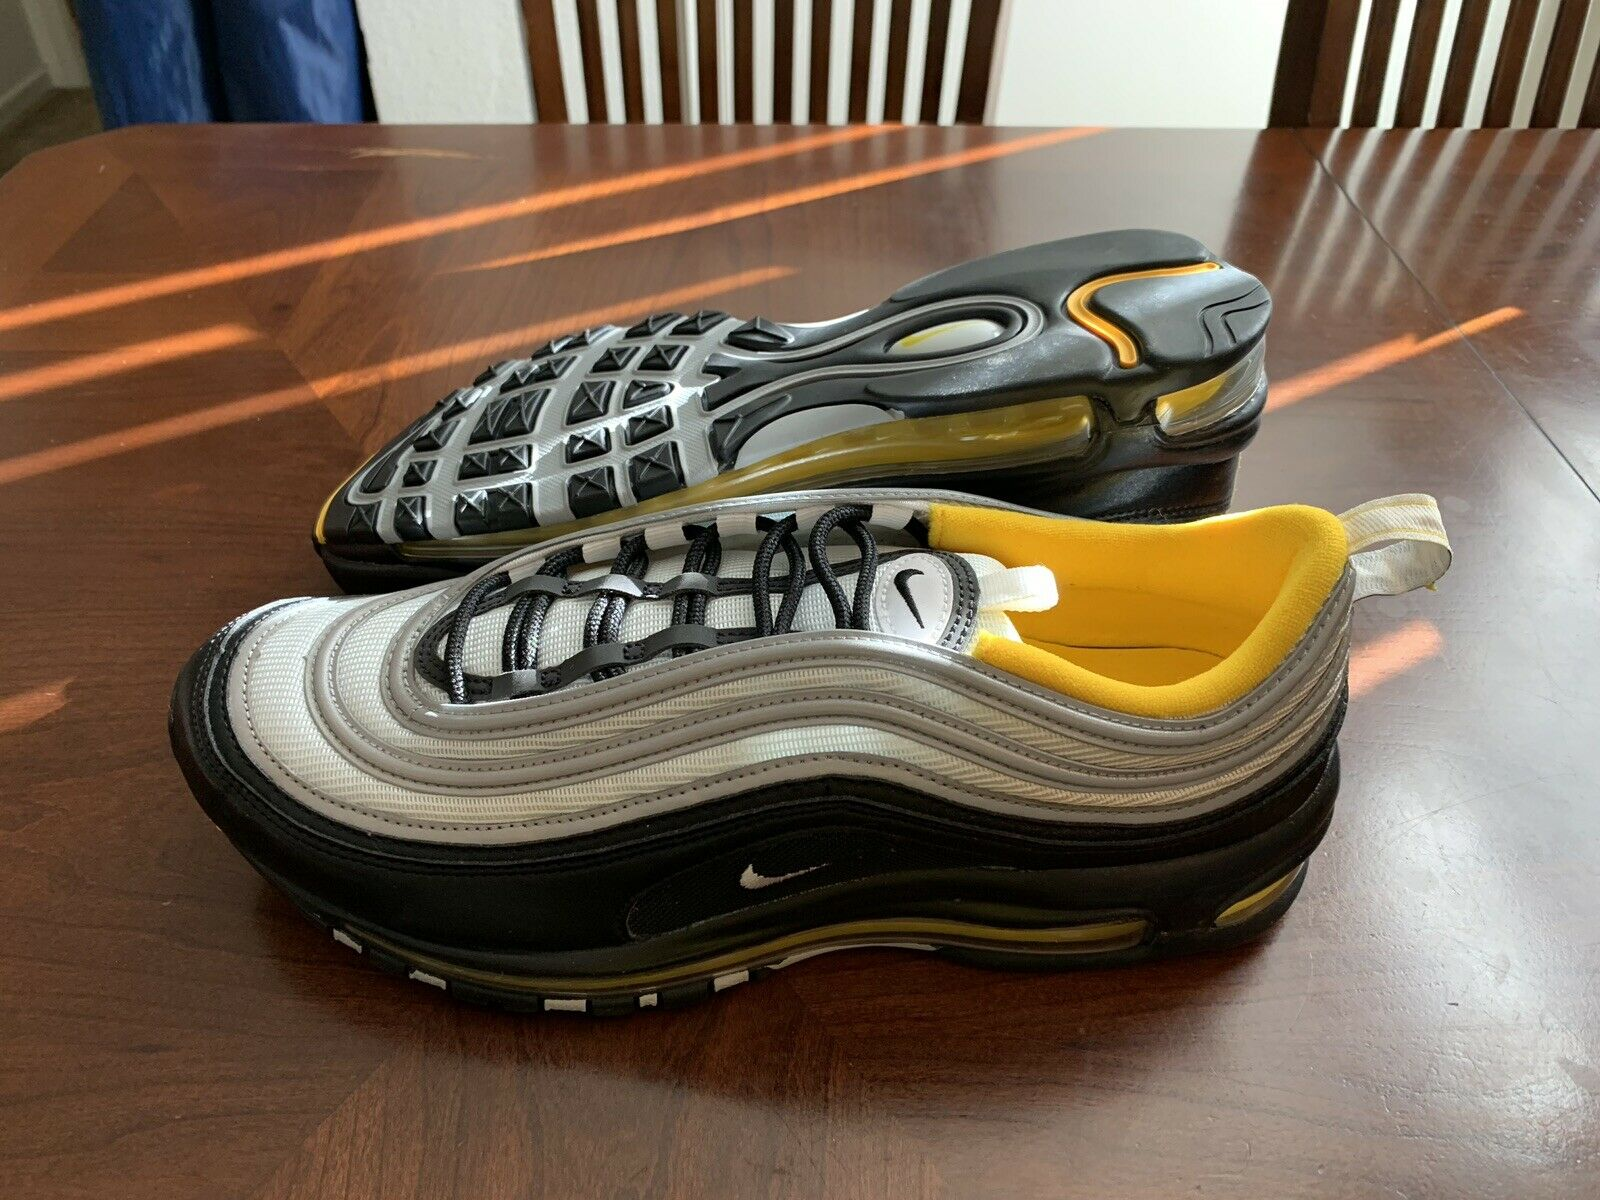 Nike Air Max 97 Steelers Black White yellow Sneakers Size 11.5 921826-008